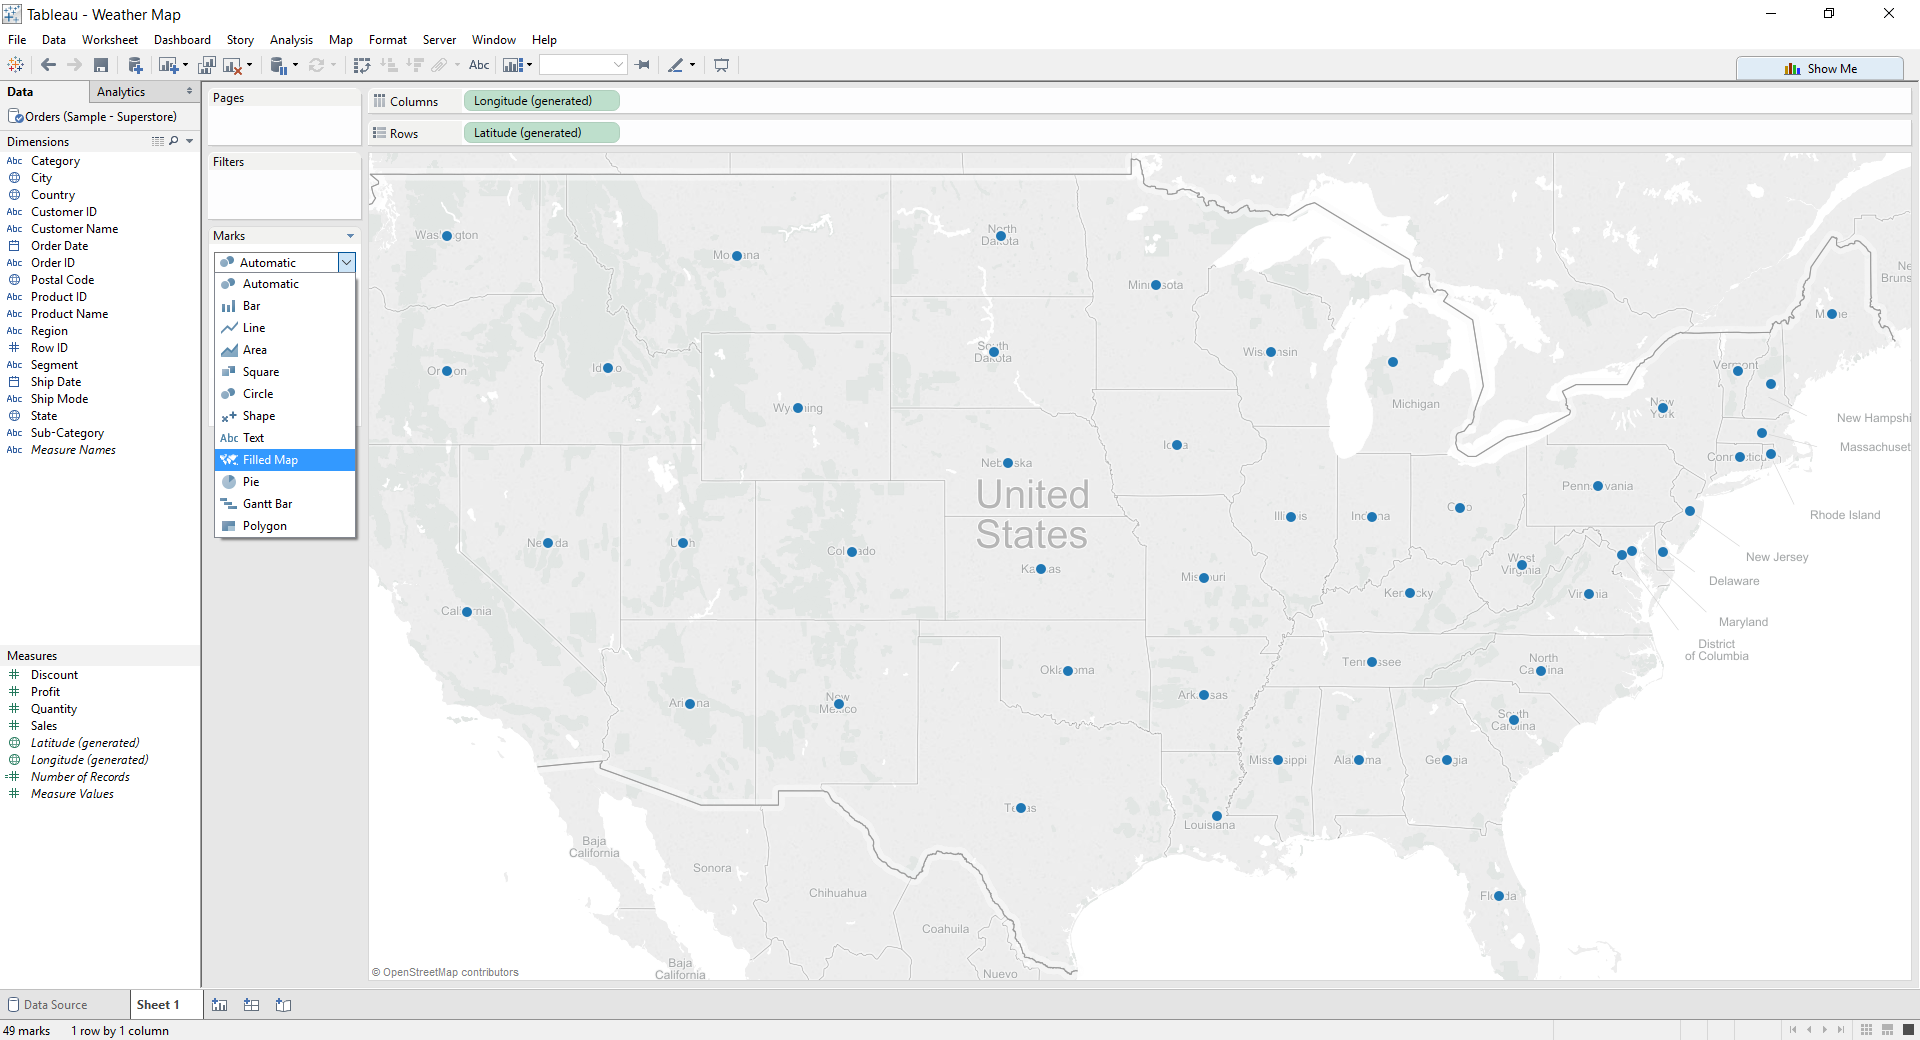 Tableau: Change to Filled Map